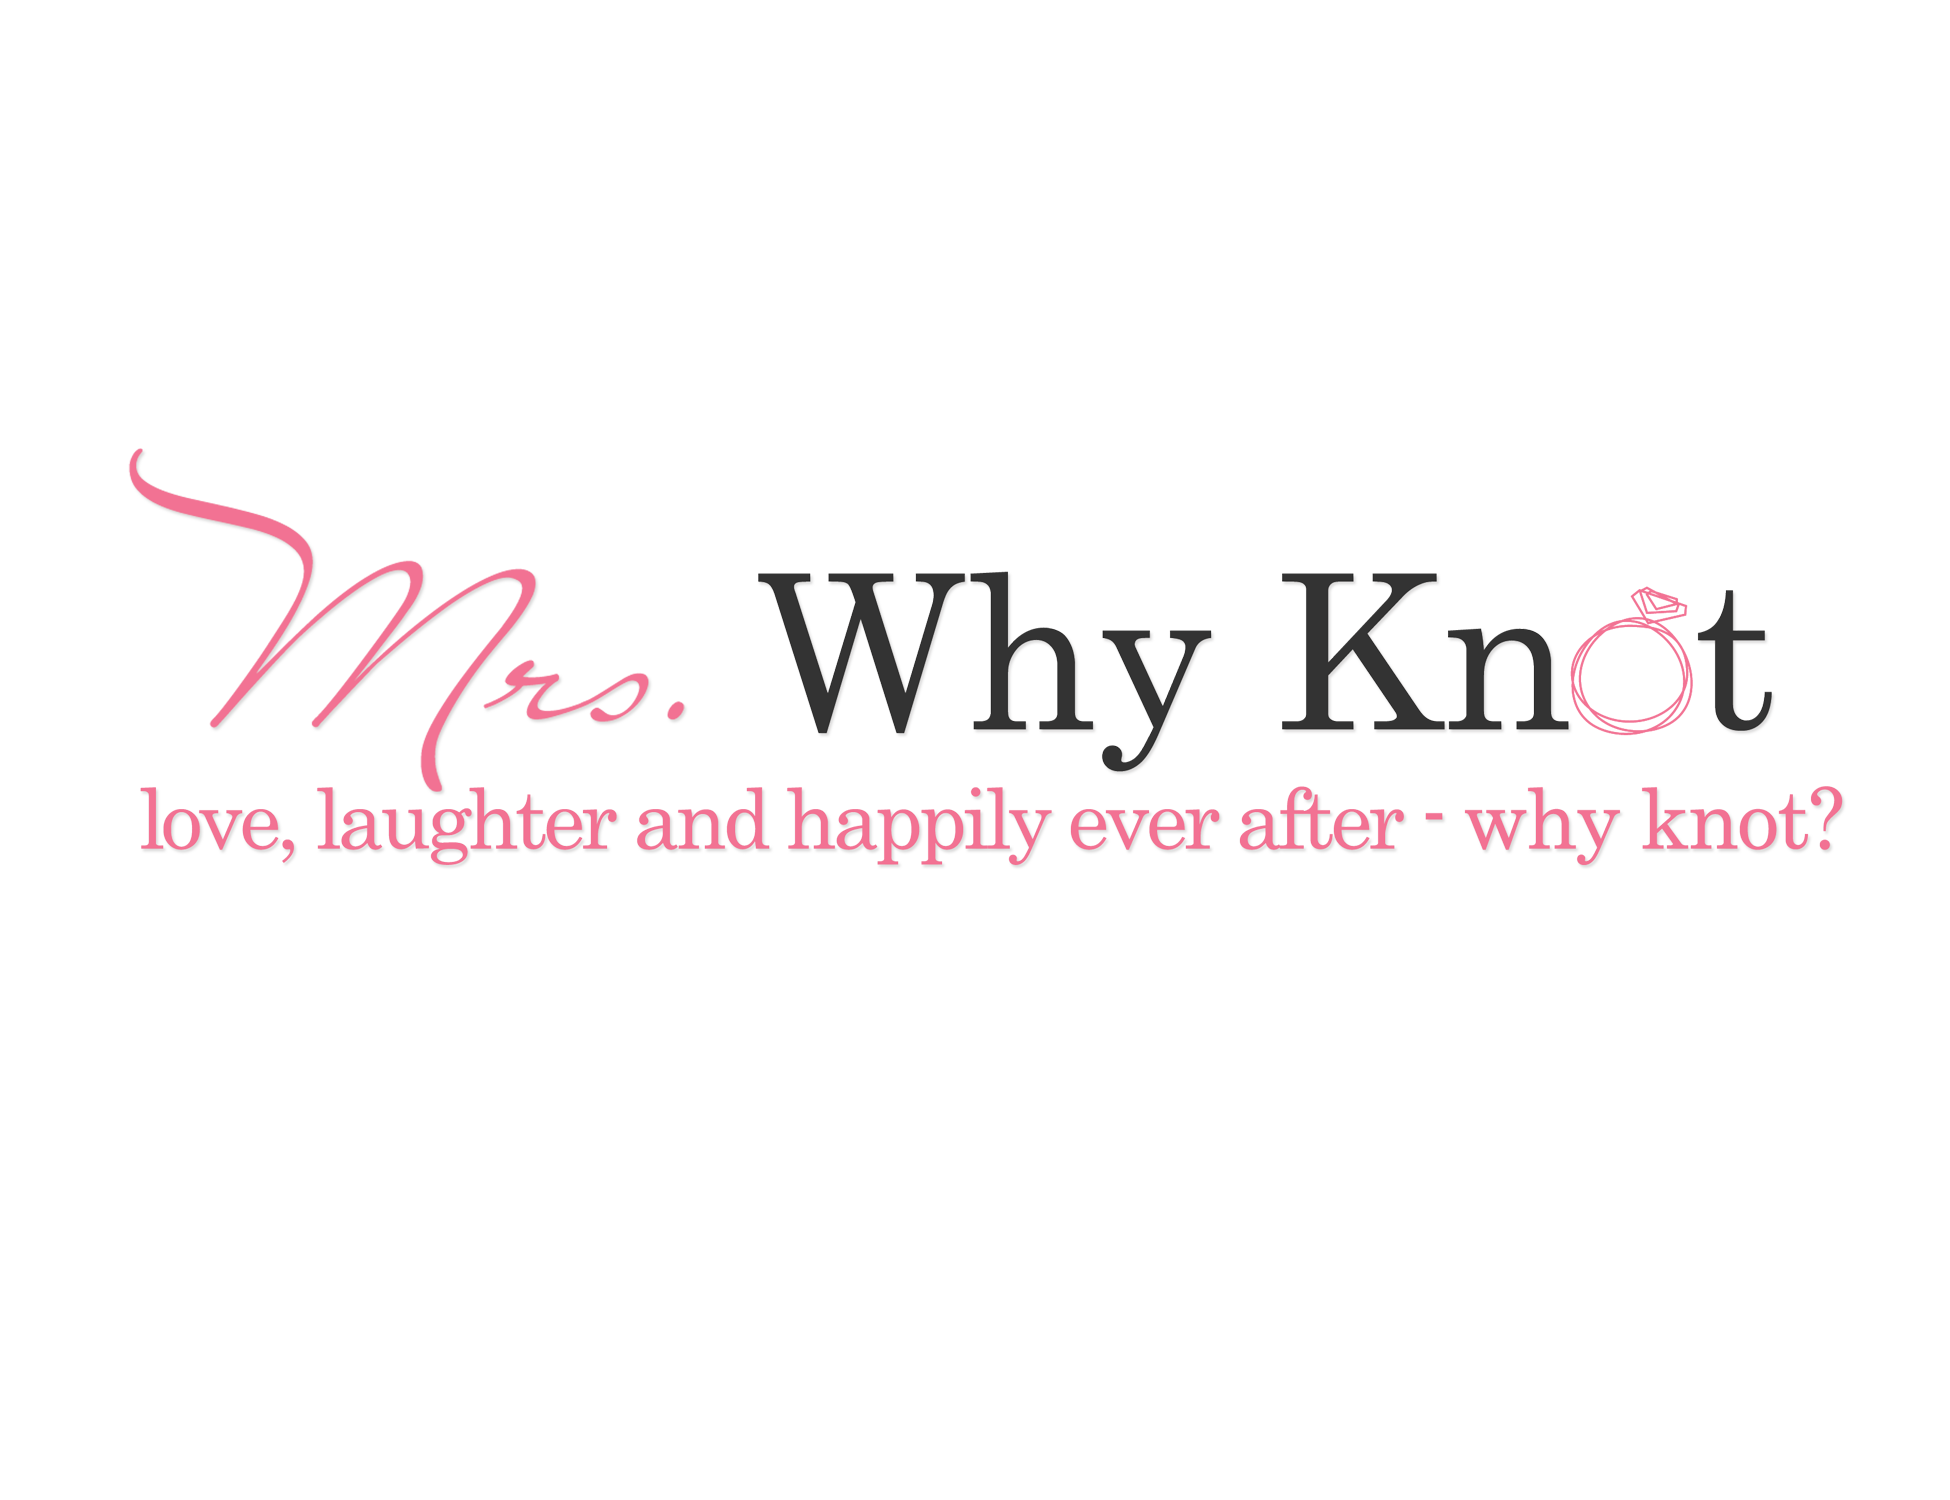 Mrs. Why Knot